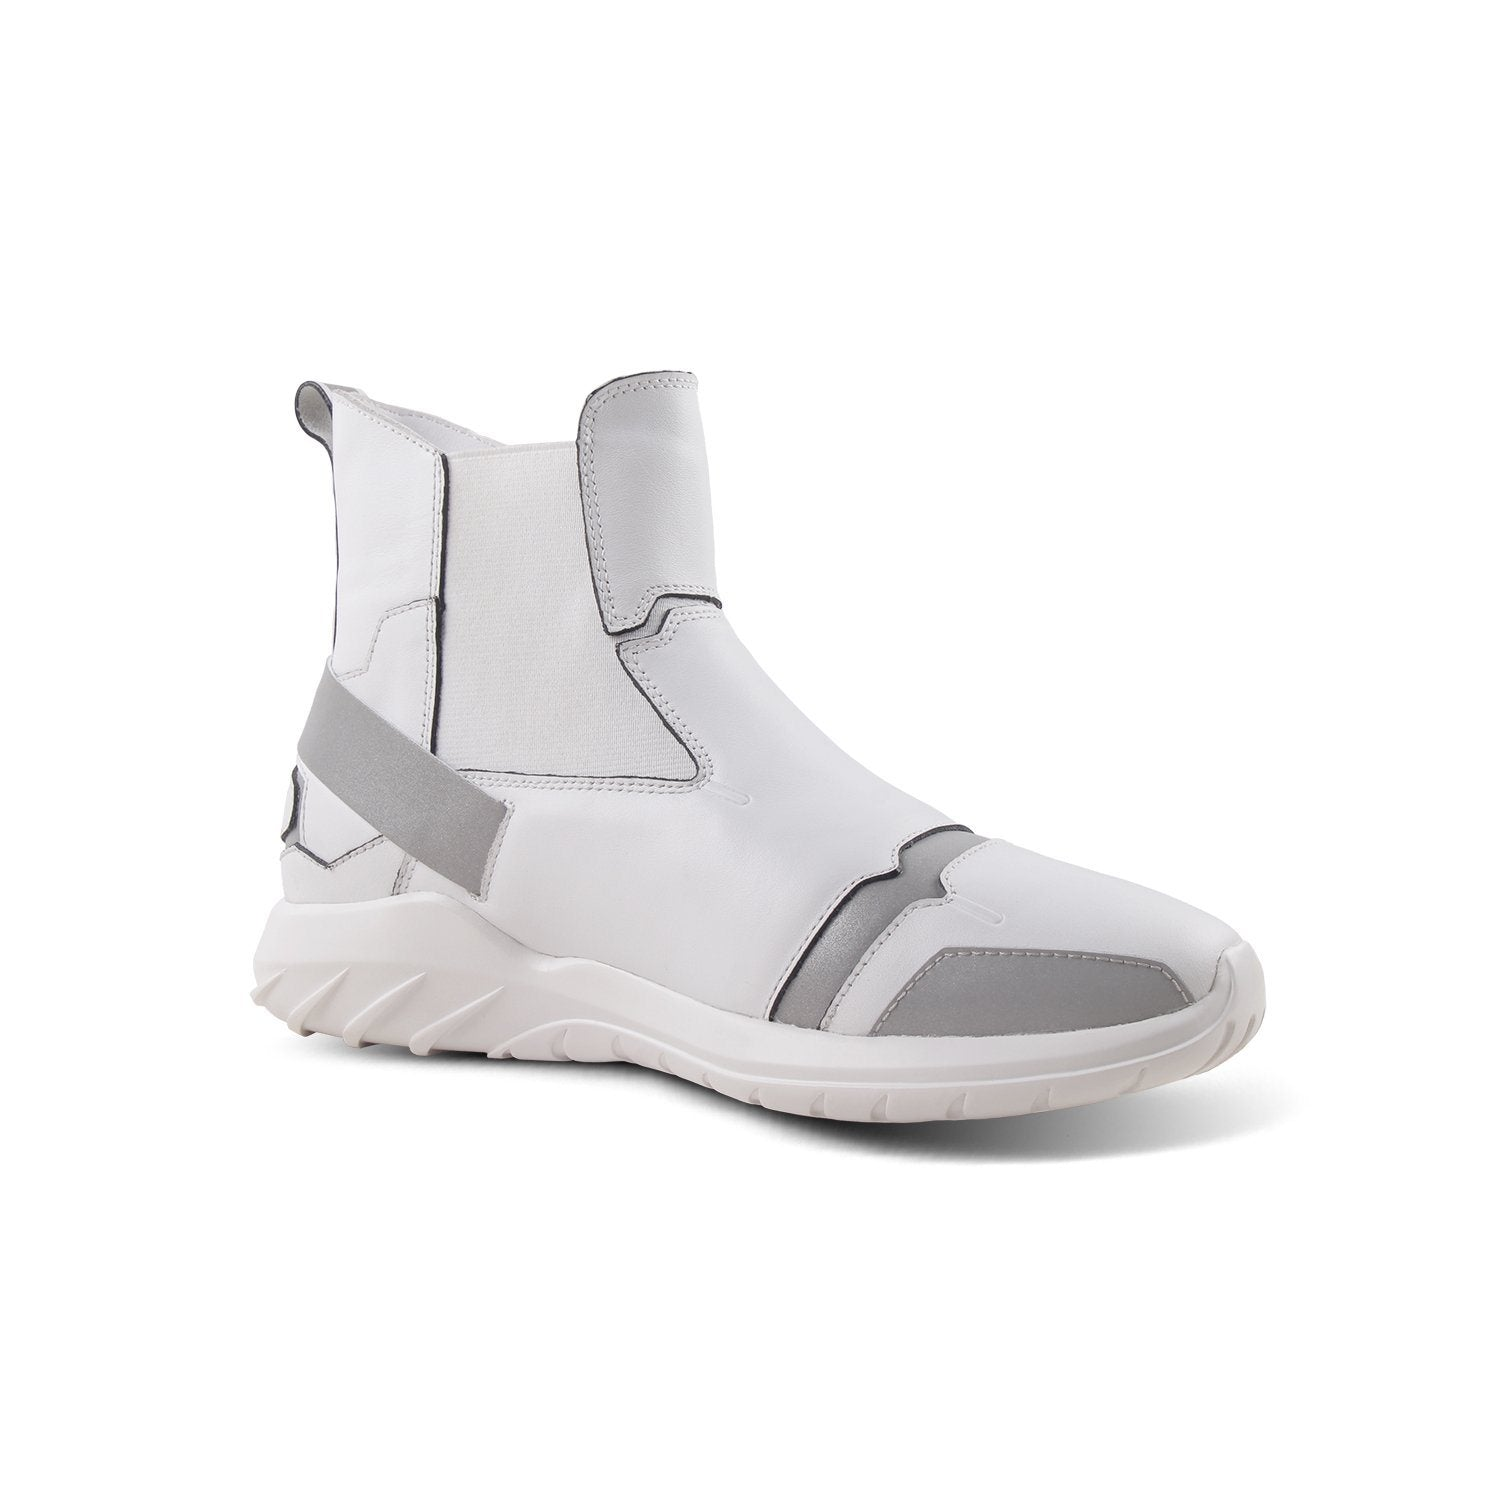 Laceless Sneaker One Step For Man High Tops White - Soulsfeng